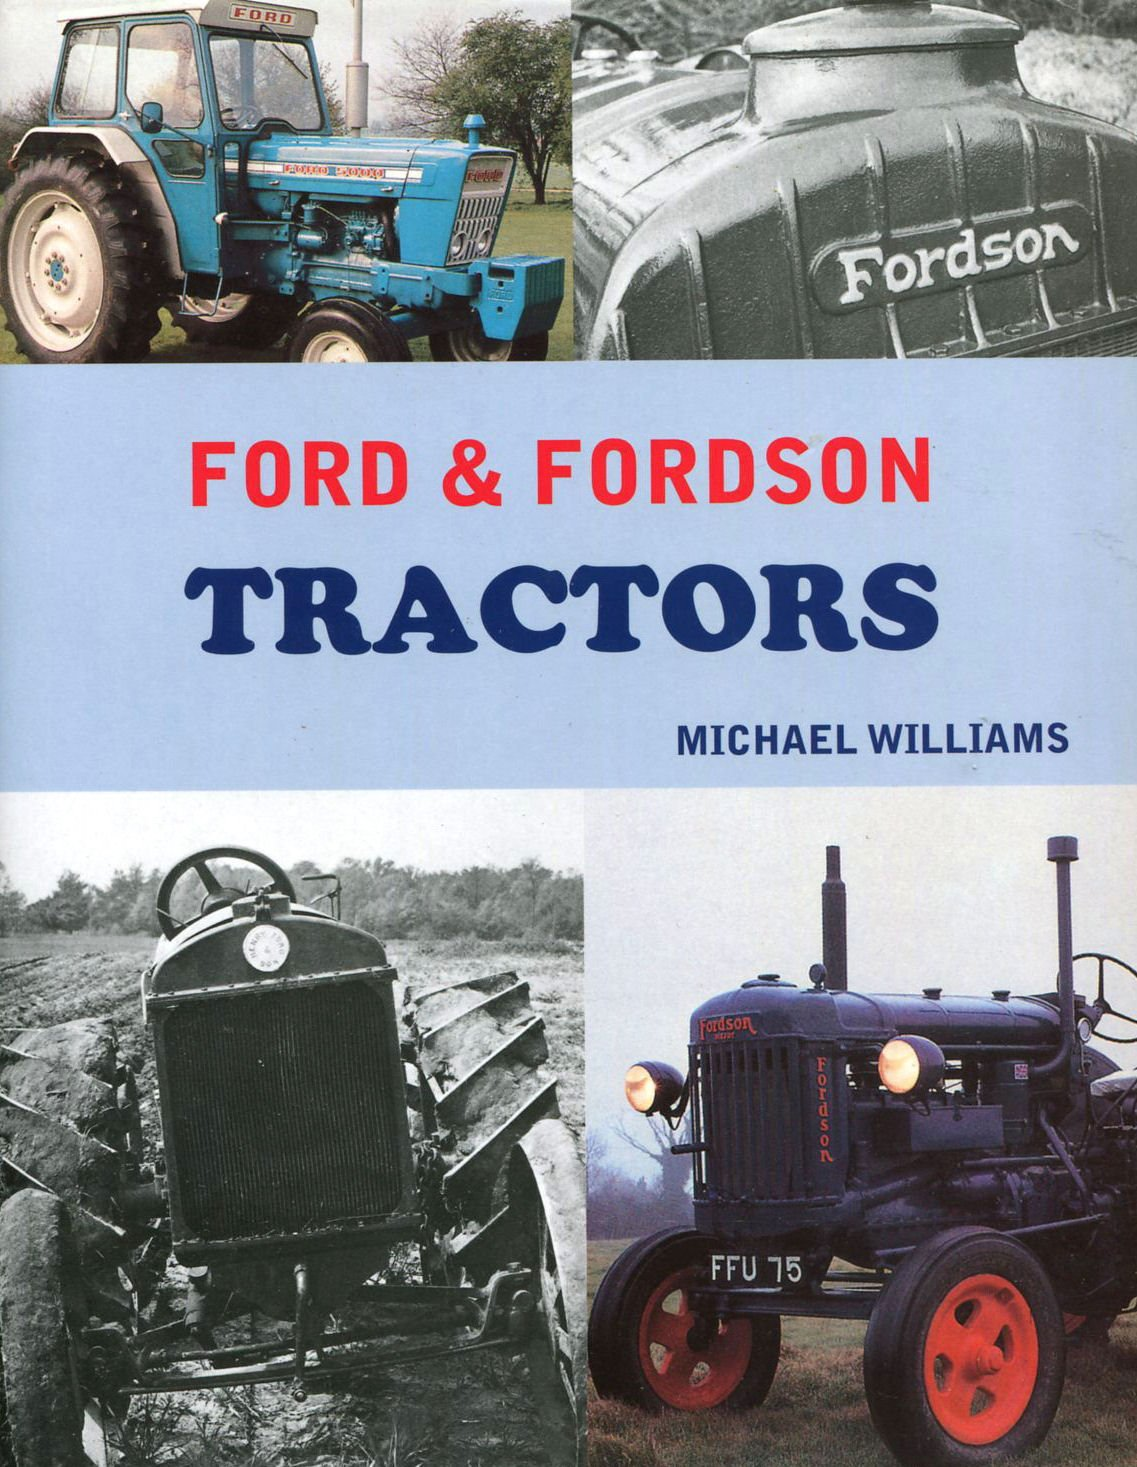 FORD AND FORDSON TRACTORS: Amazon.co.uk: Michael Williams, Andrew Morland:  9780753714478: Books